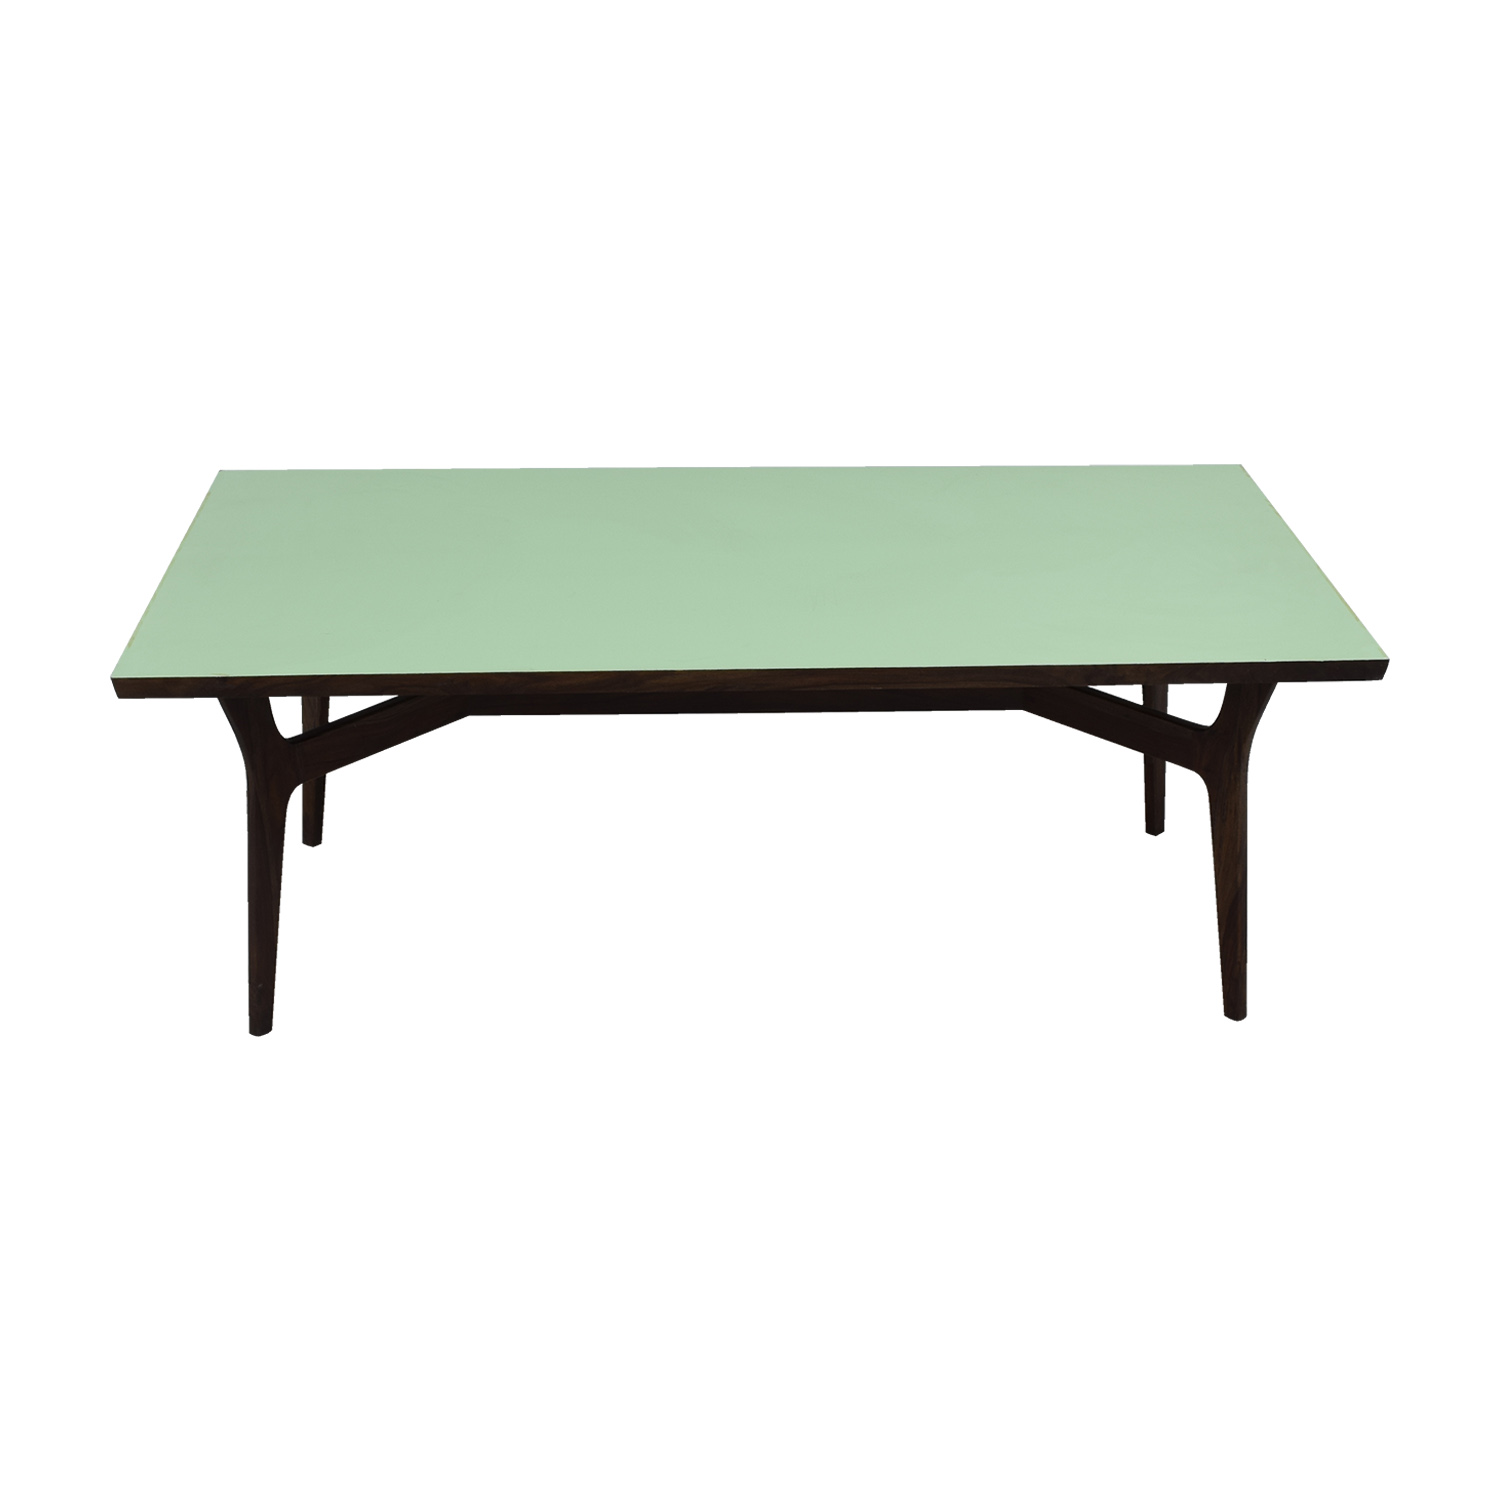 Wood and Teal Dining Table / Tables